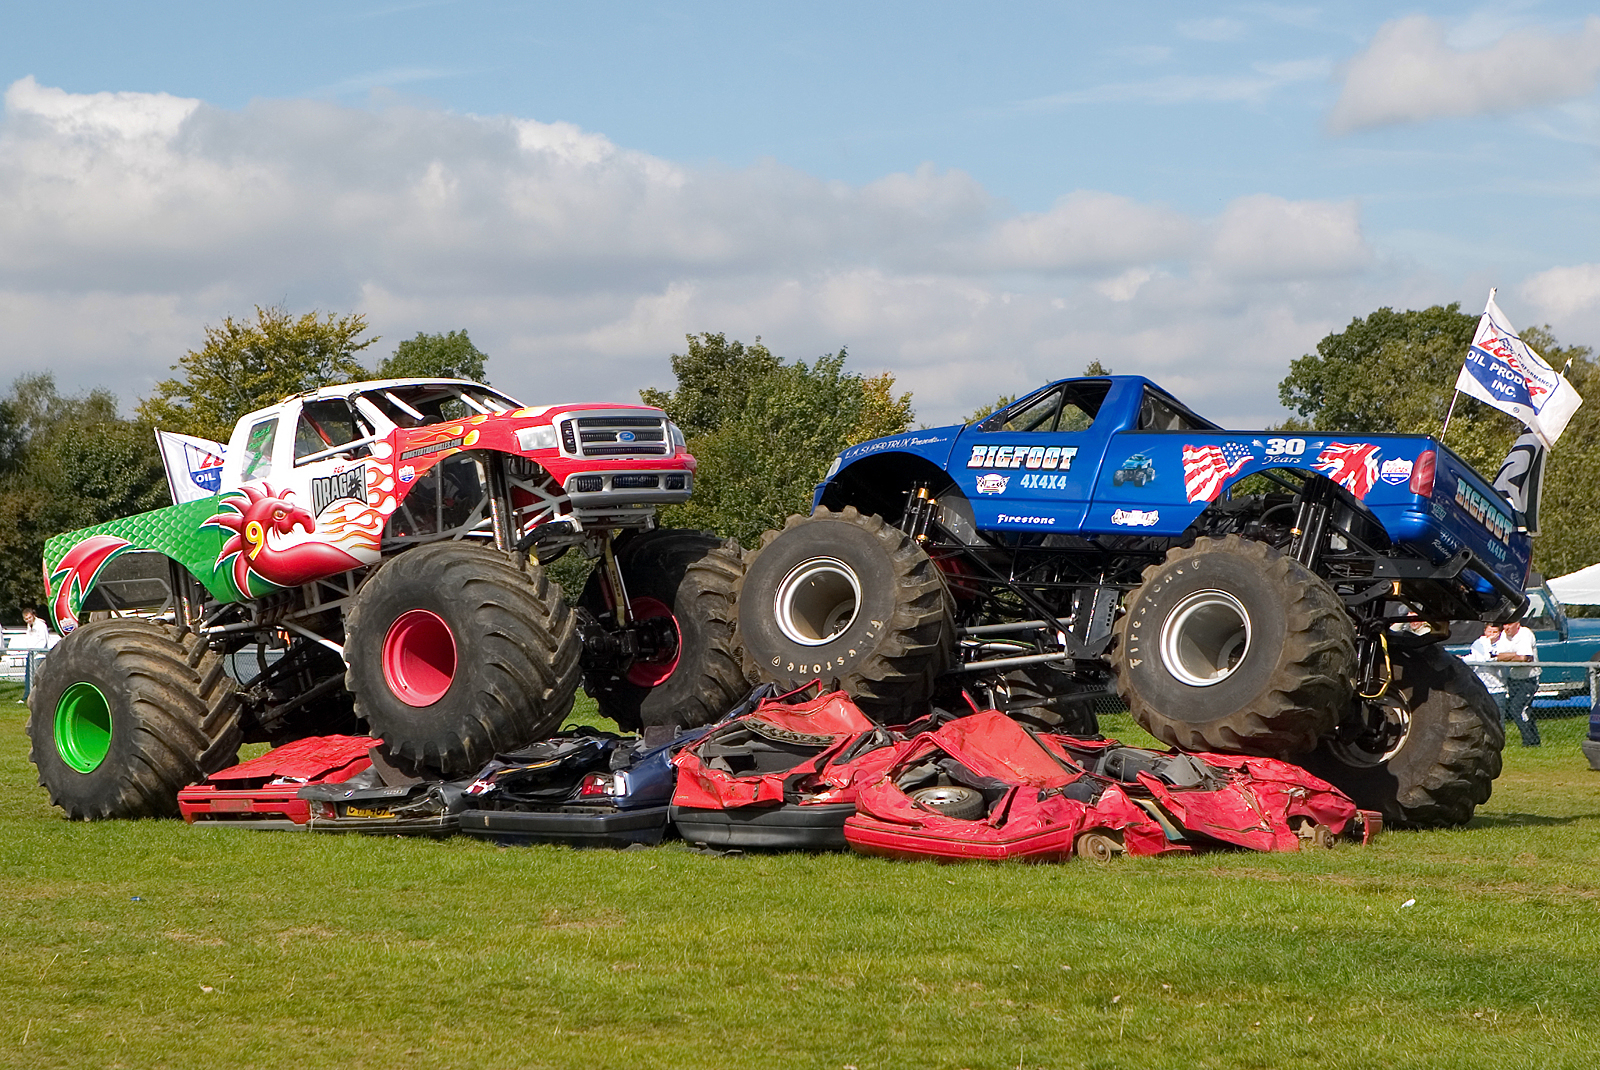 pics photos monstertrucks wallpaper 020 1600 1070 jpg